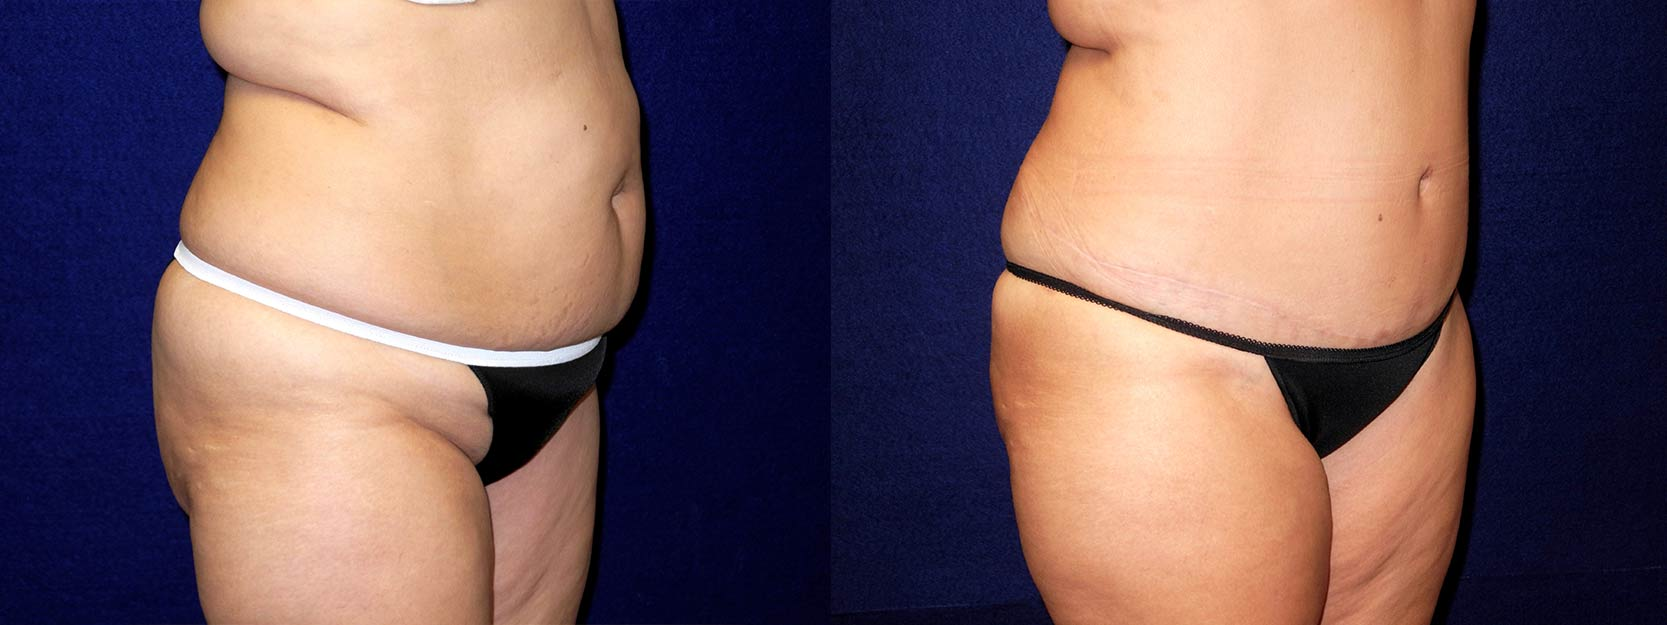 Right 3/4 View - Tummy Tuck and Liposuction